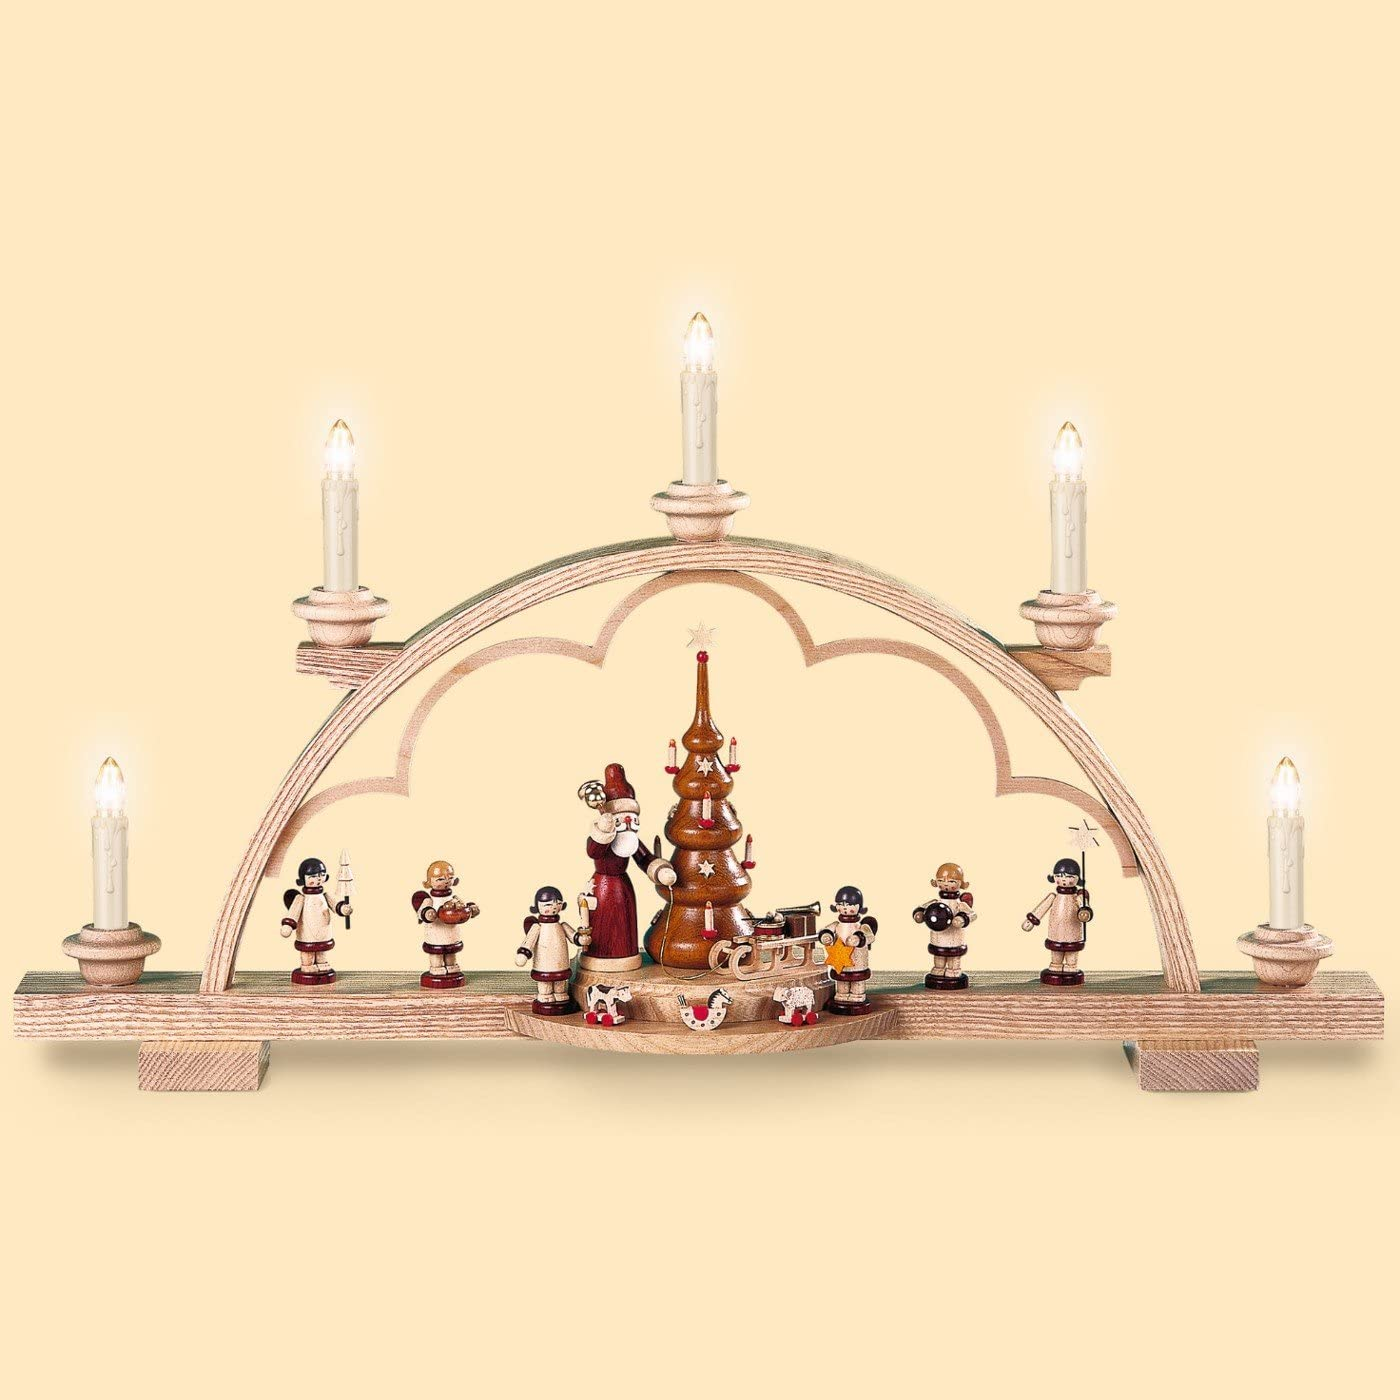 Müller German candle arch Santa Super special price giving Bargain cm in length 22 out 57